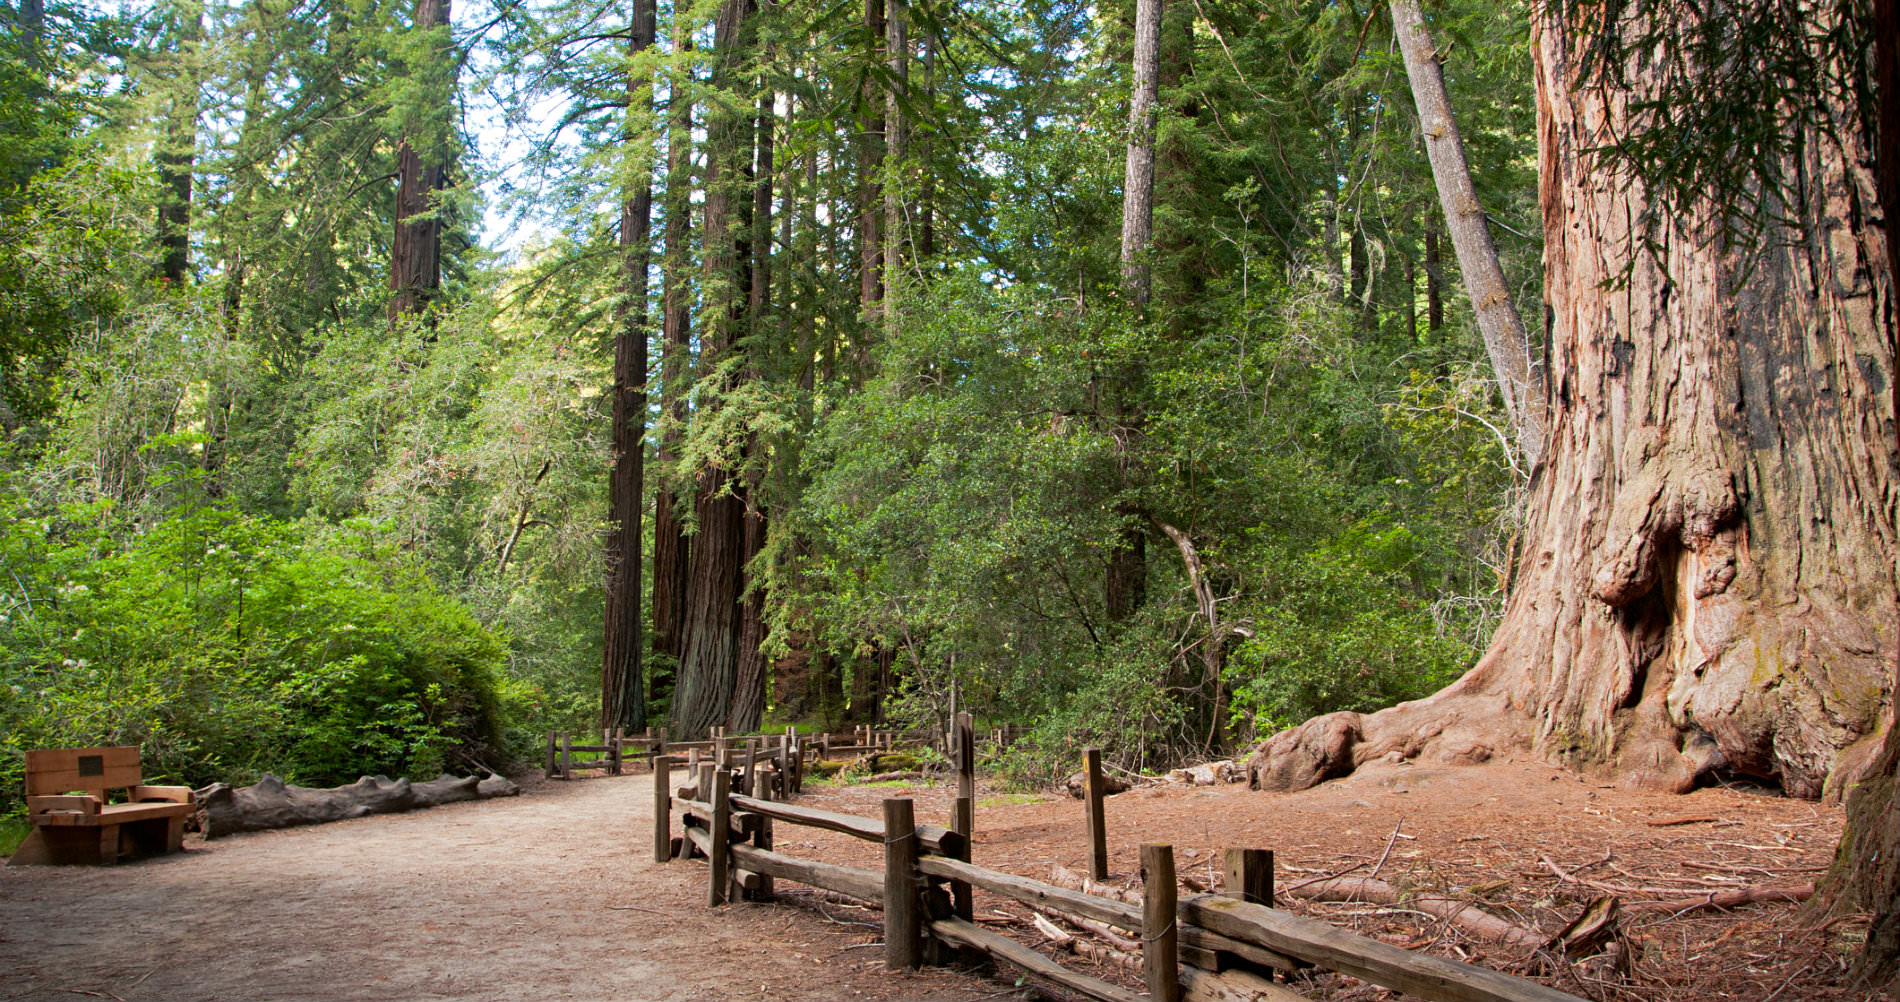 Hiking trail in Fortuna CA surrounded by lush greenery and giant redwood trees